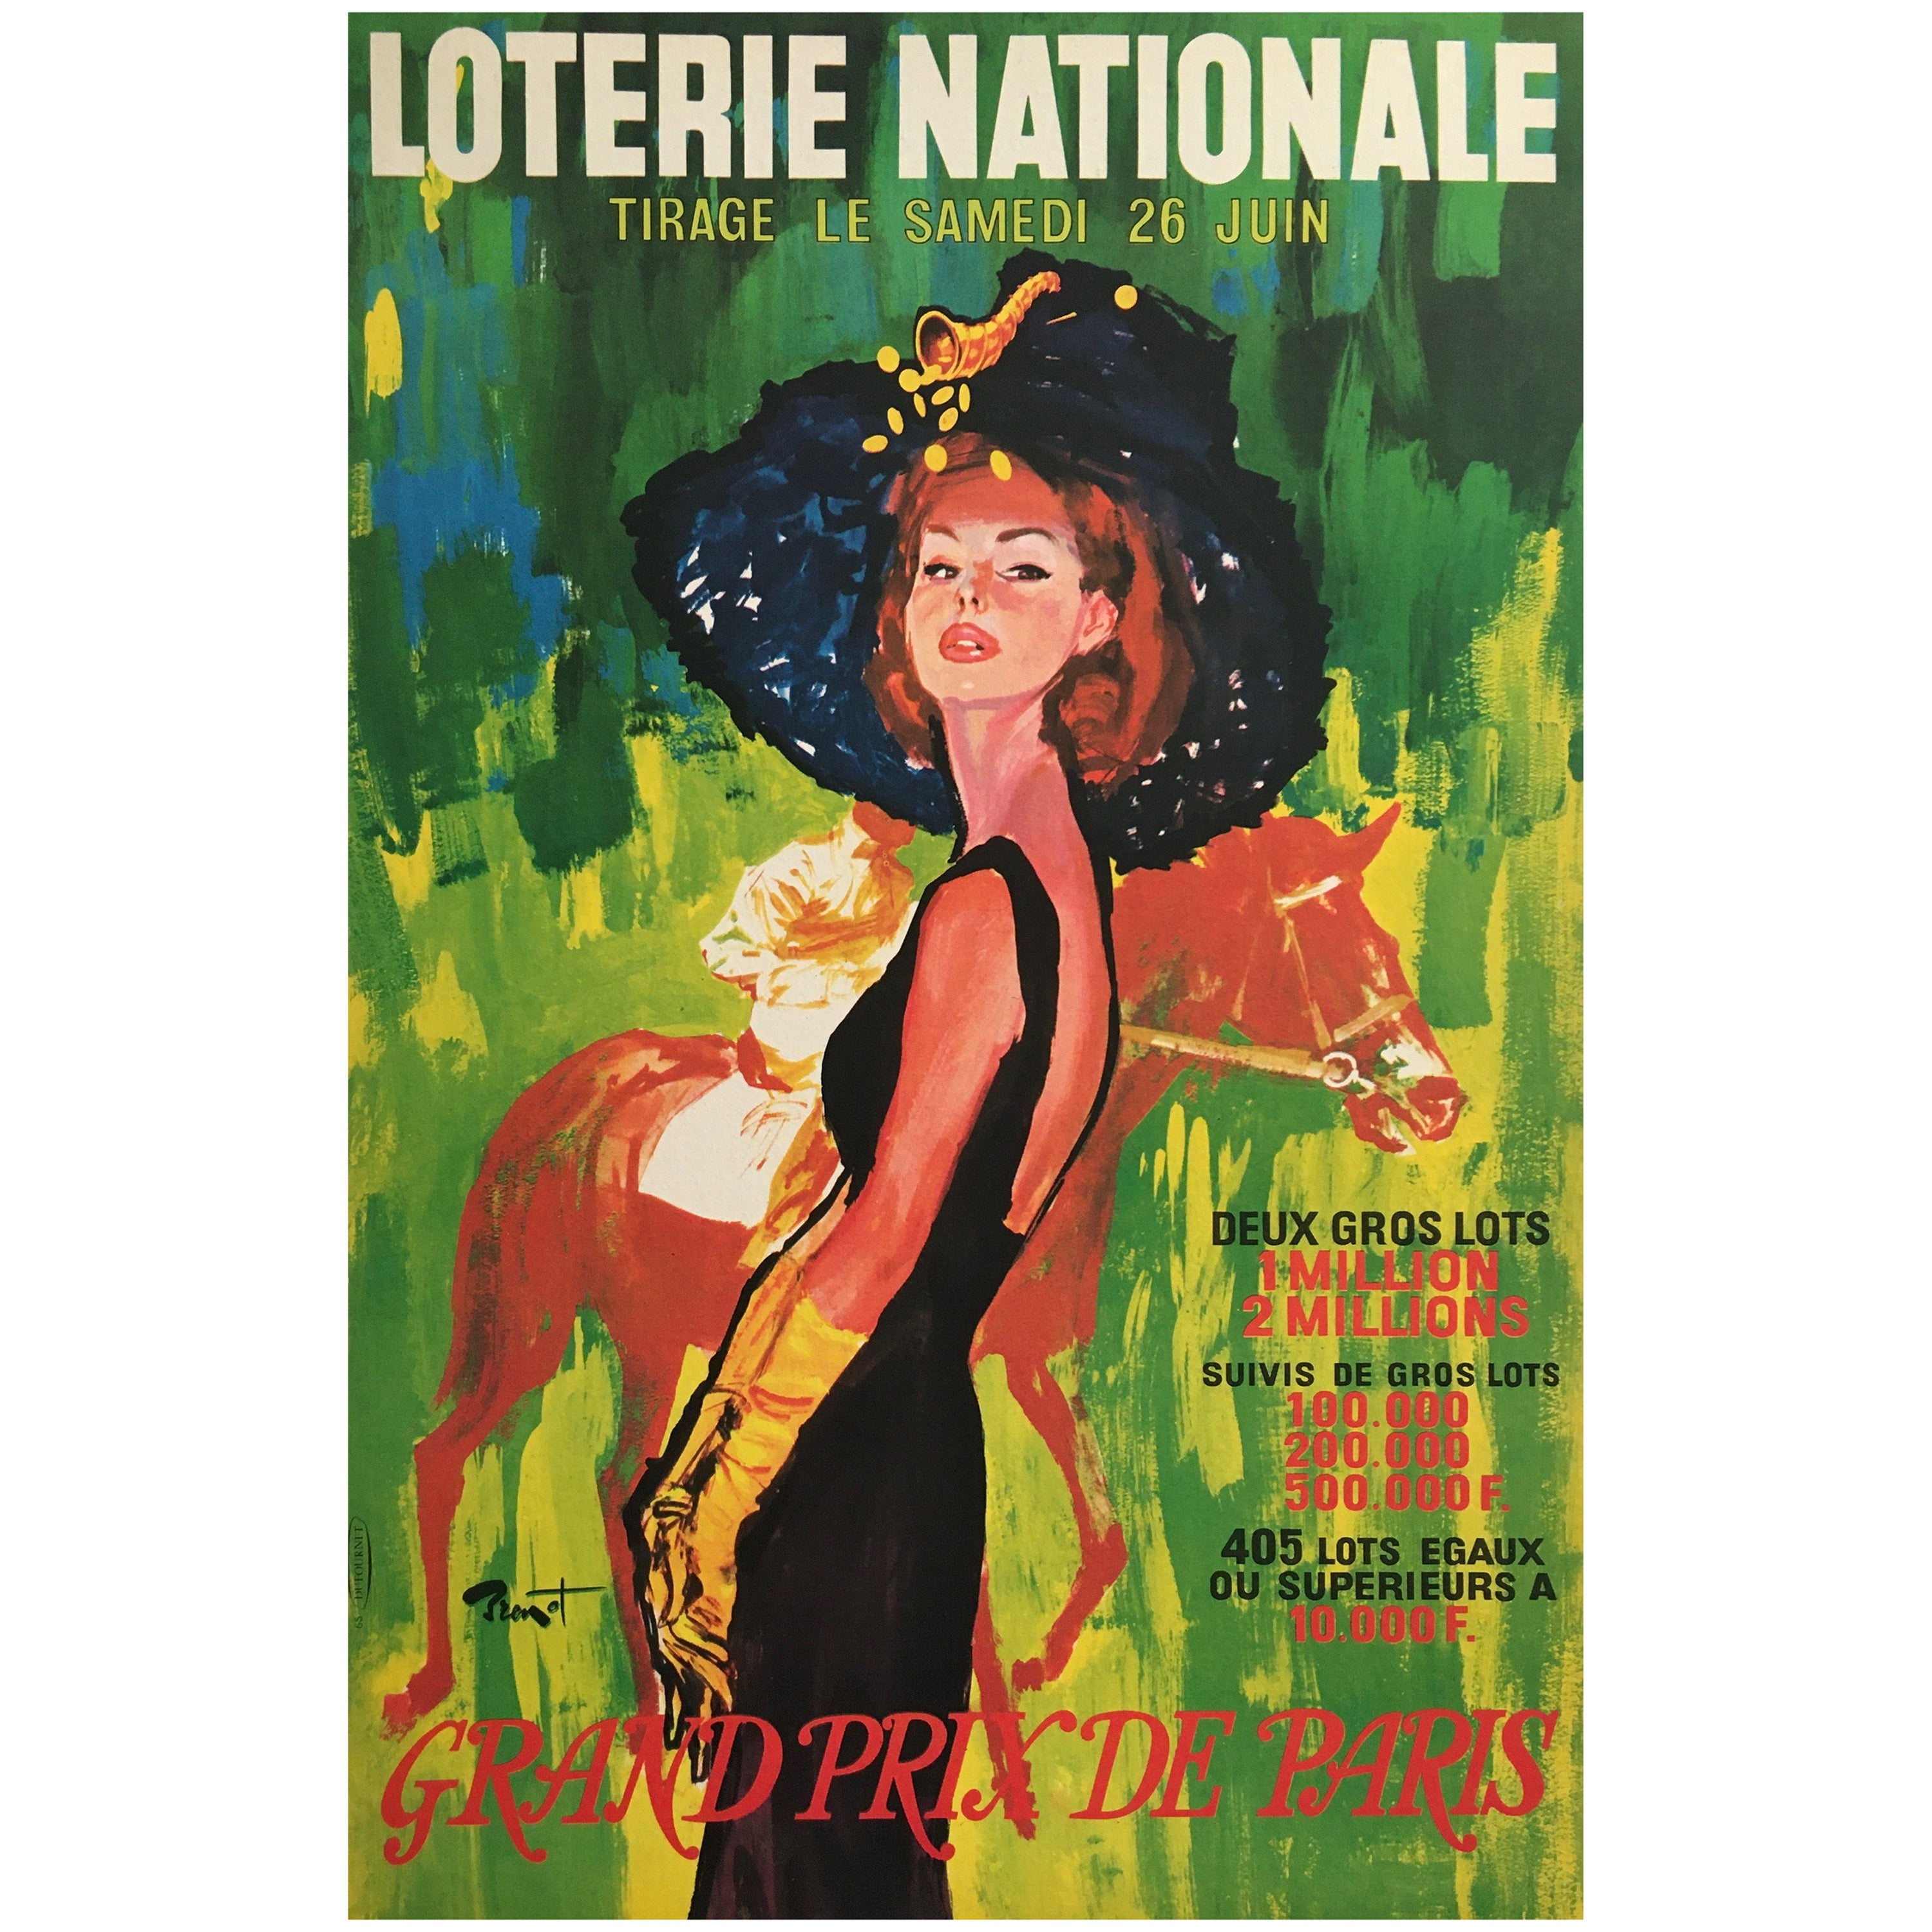 'Loterie Nationale' Original Vintage French Lithograph Poster, by Brenot, 1965